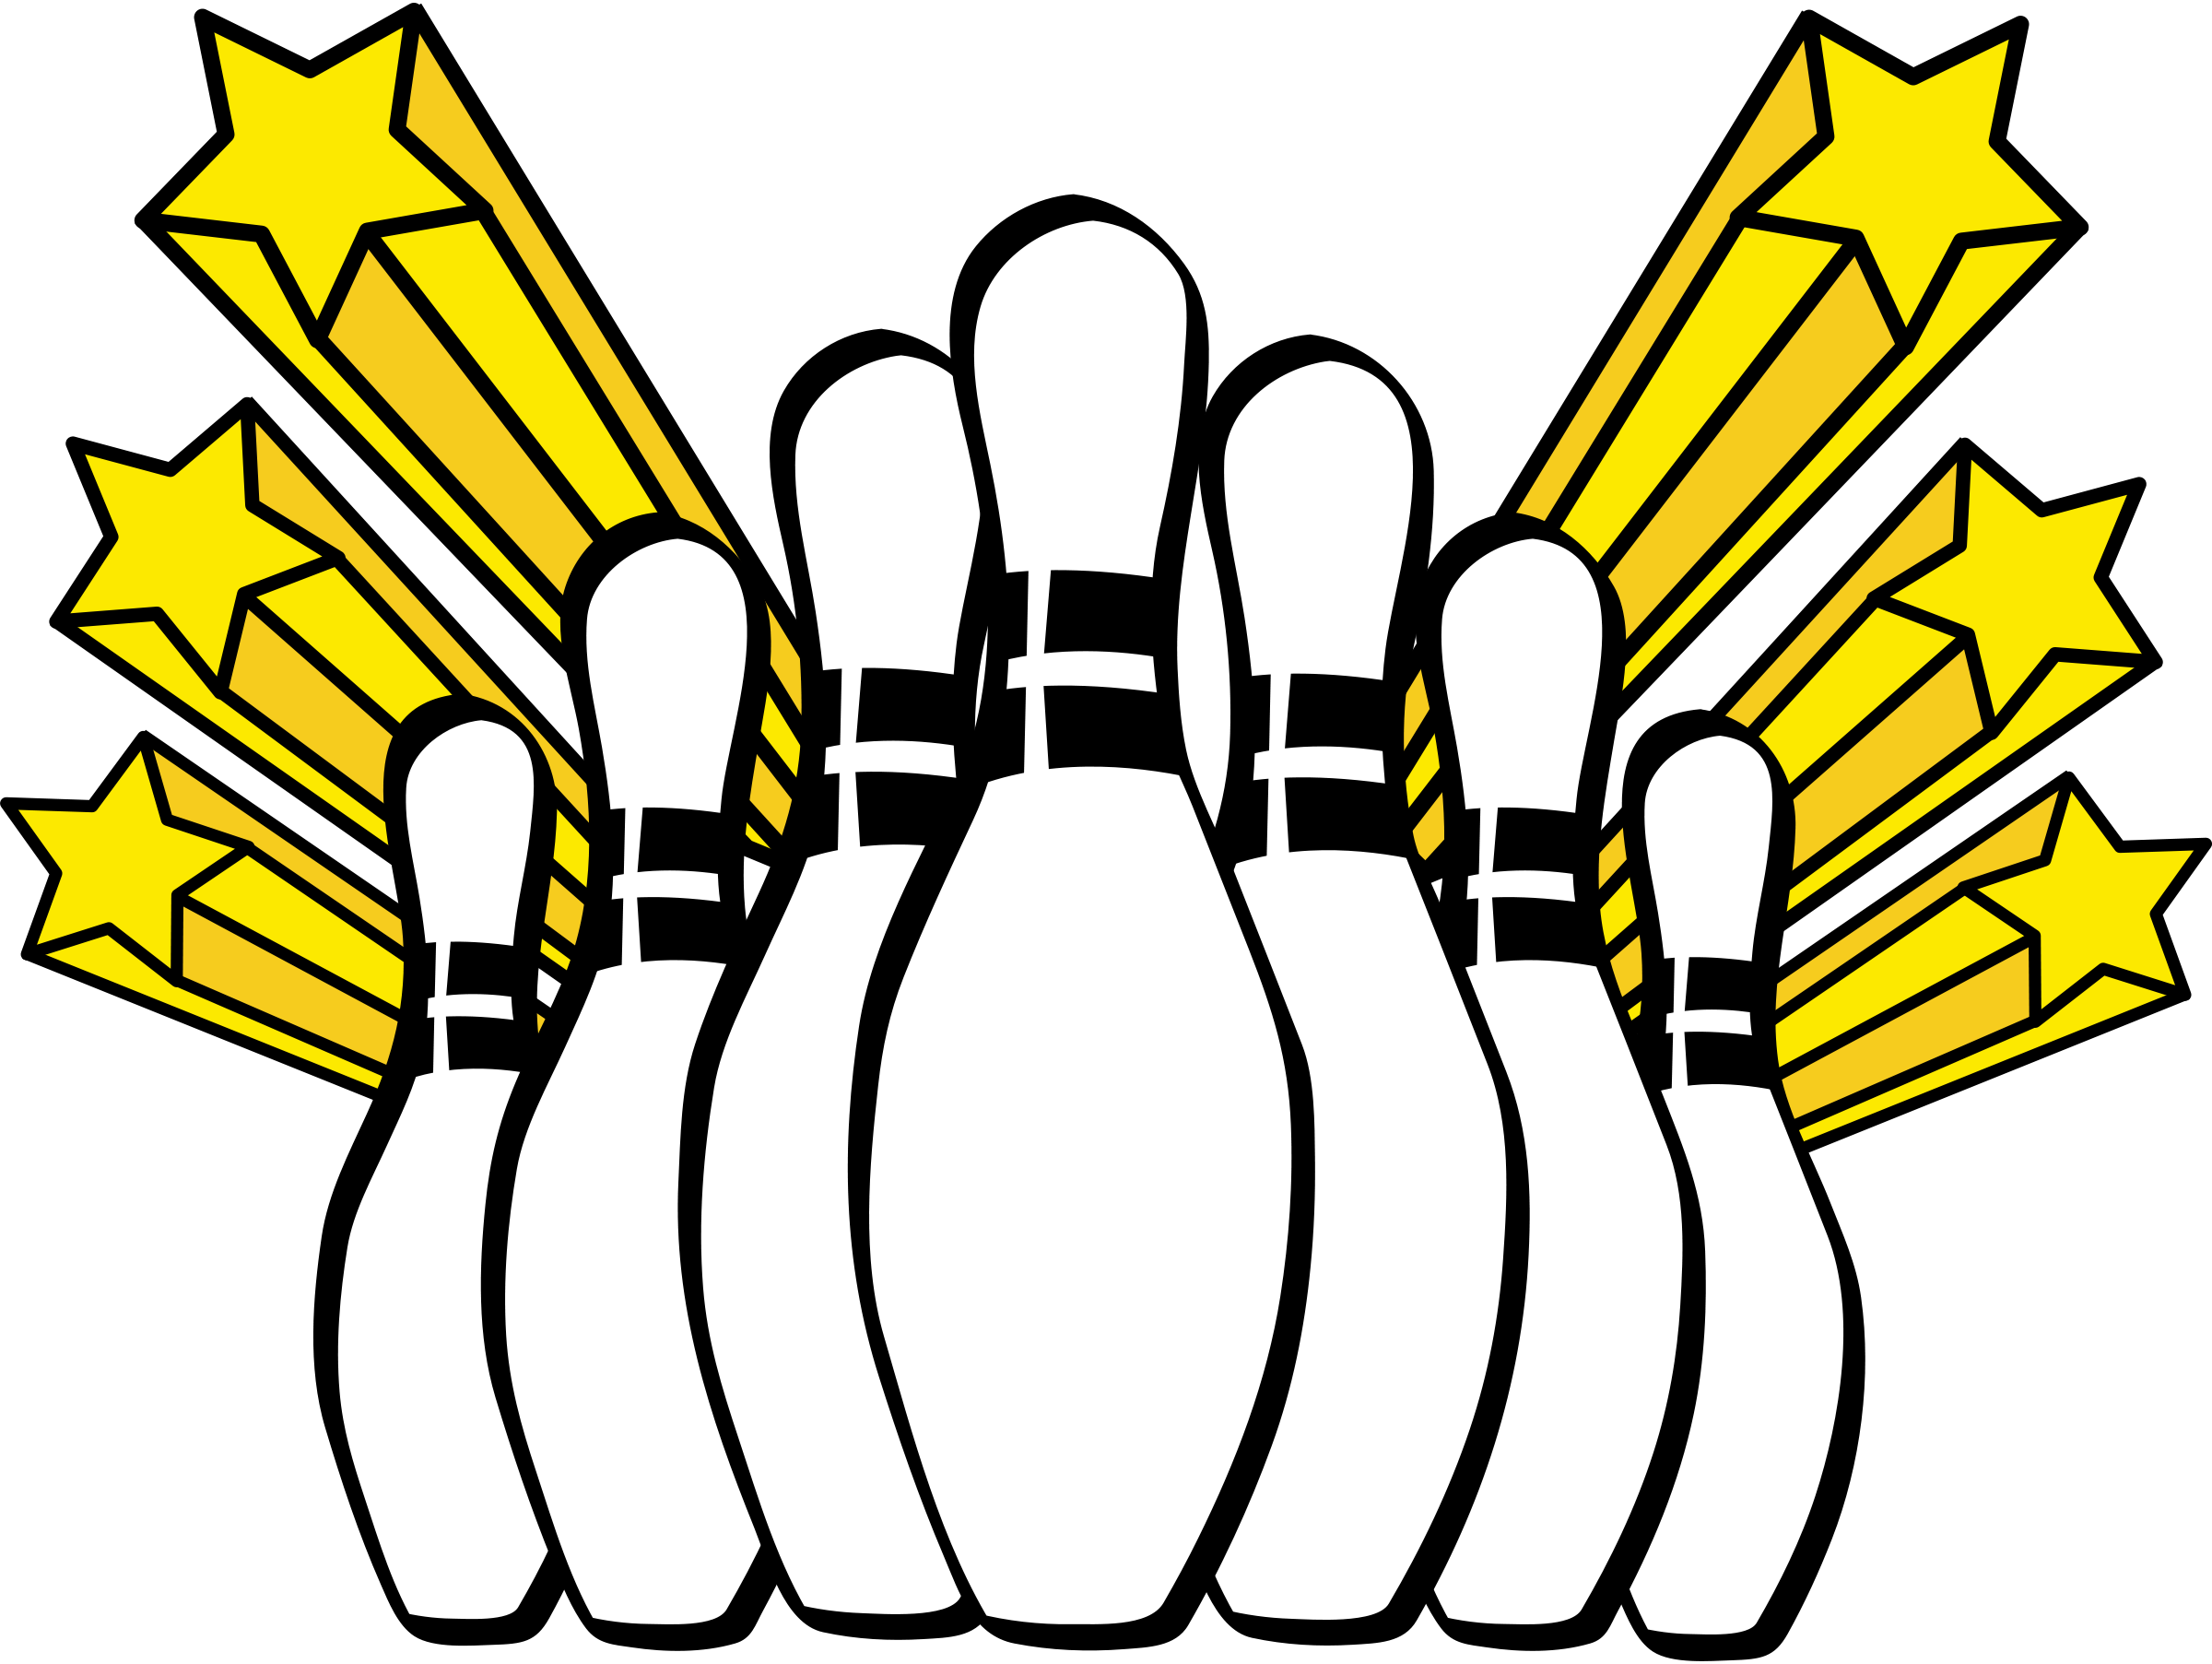 Images For Bowling Clip Art Black And Wh-Images For Bowling Clip Art Black And White. 7e311b2be358c4112ea706840e24ca-17